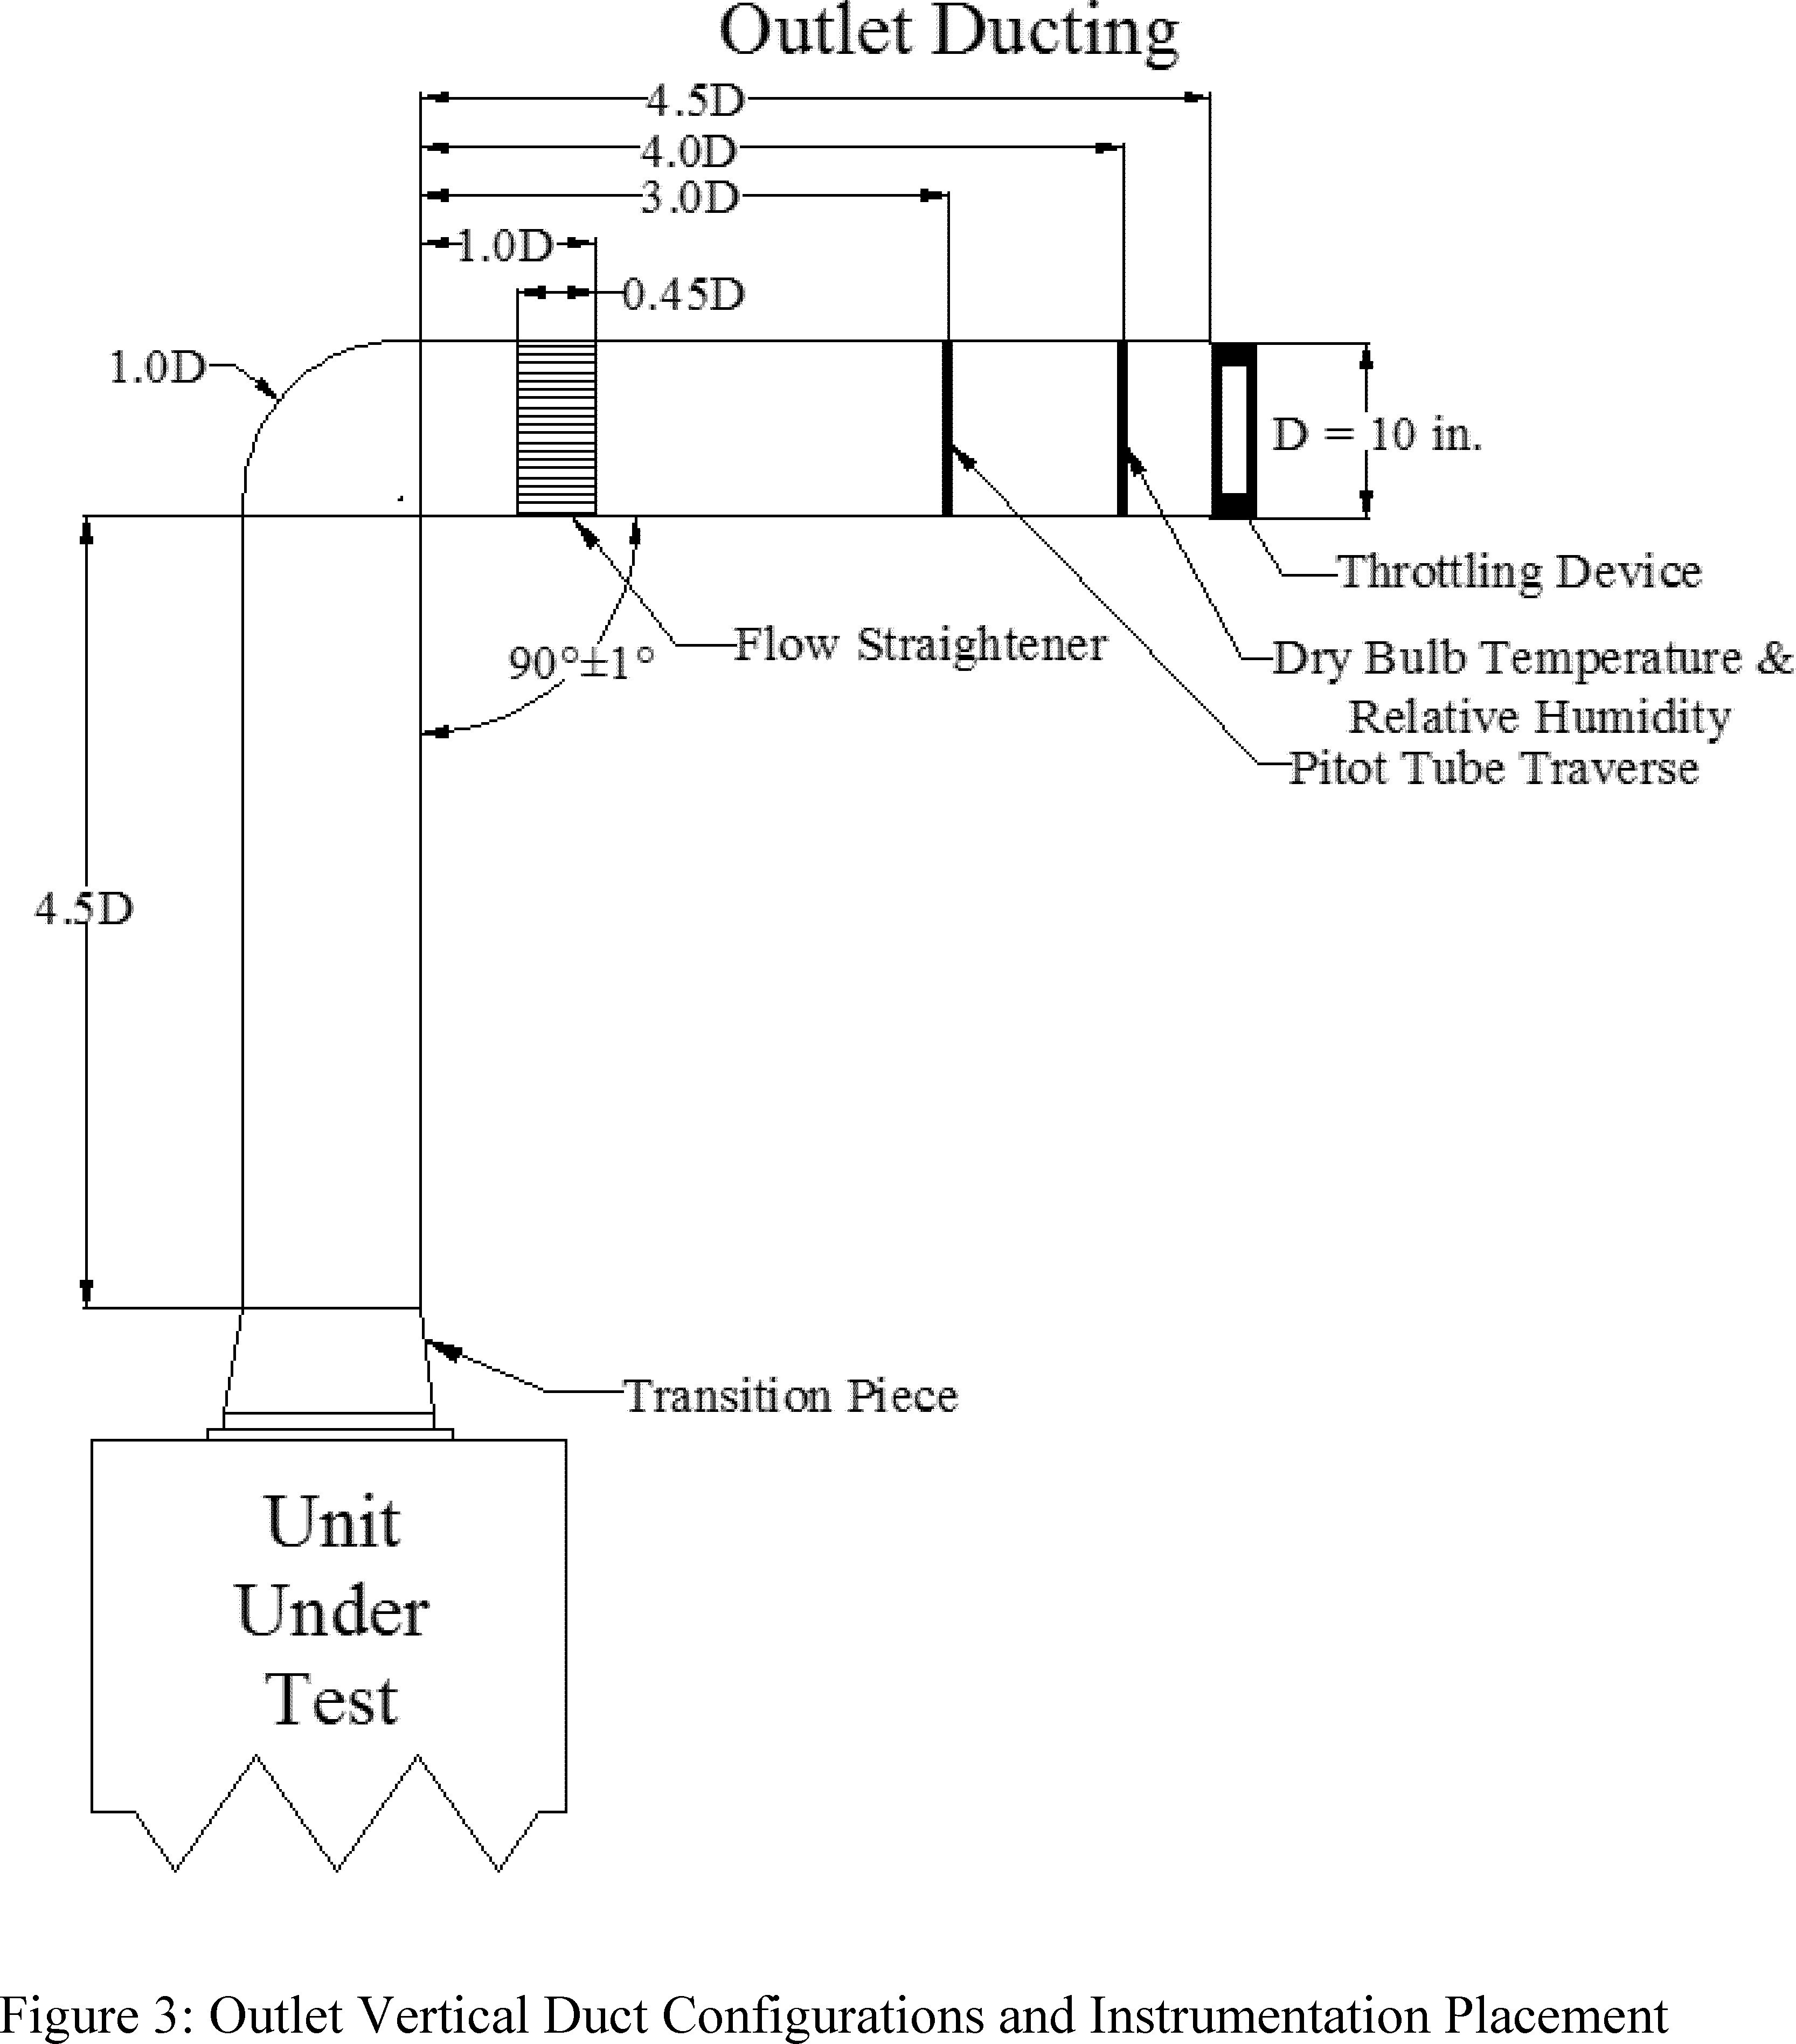 Looping Wiring Diagram Image Piping Solidworks Instrumentation Best Mobile Home Ductwork Unique Diagrams Amp